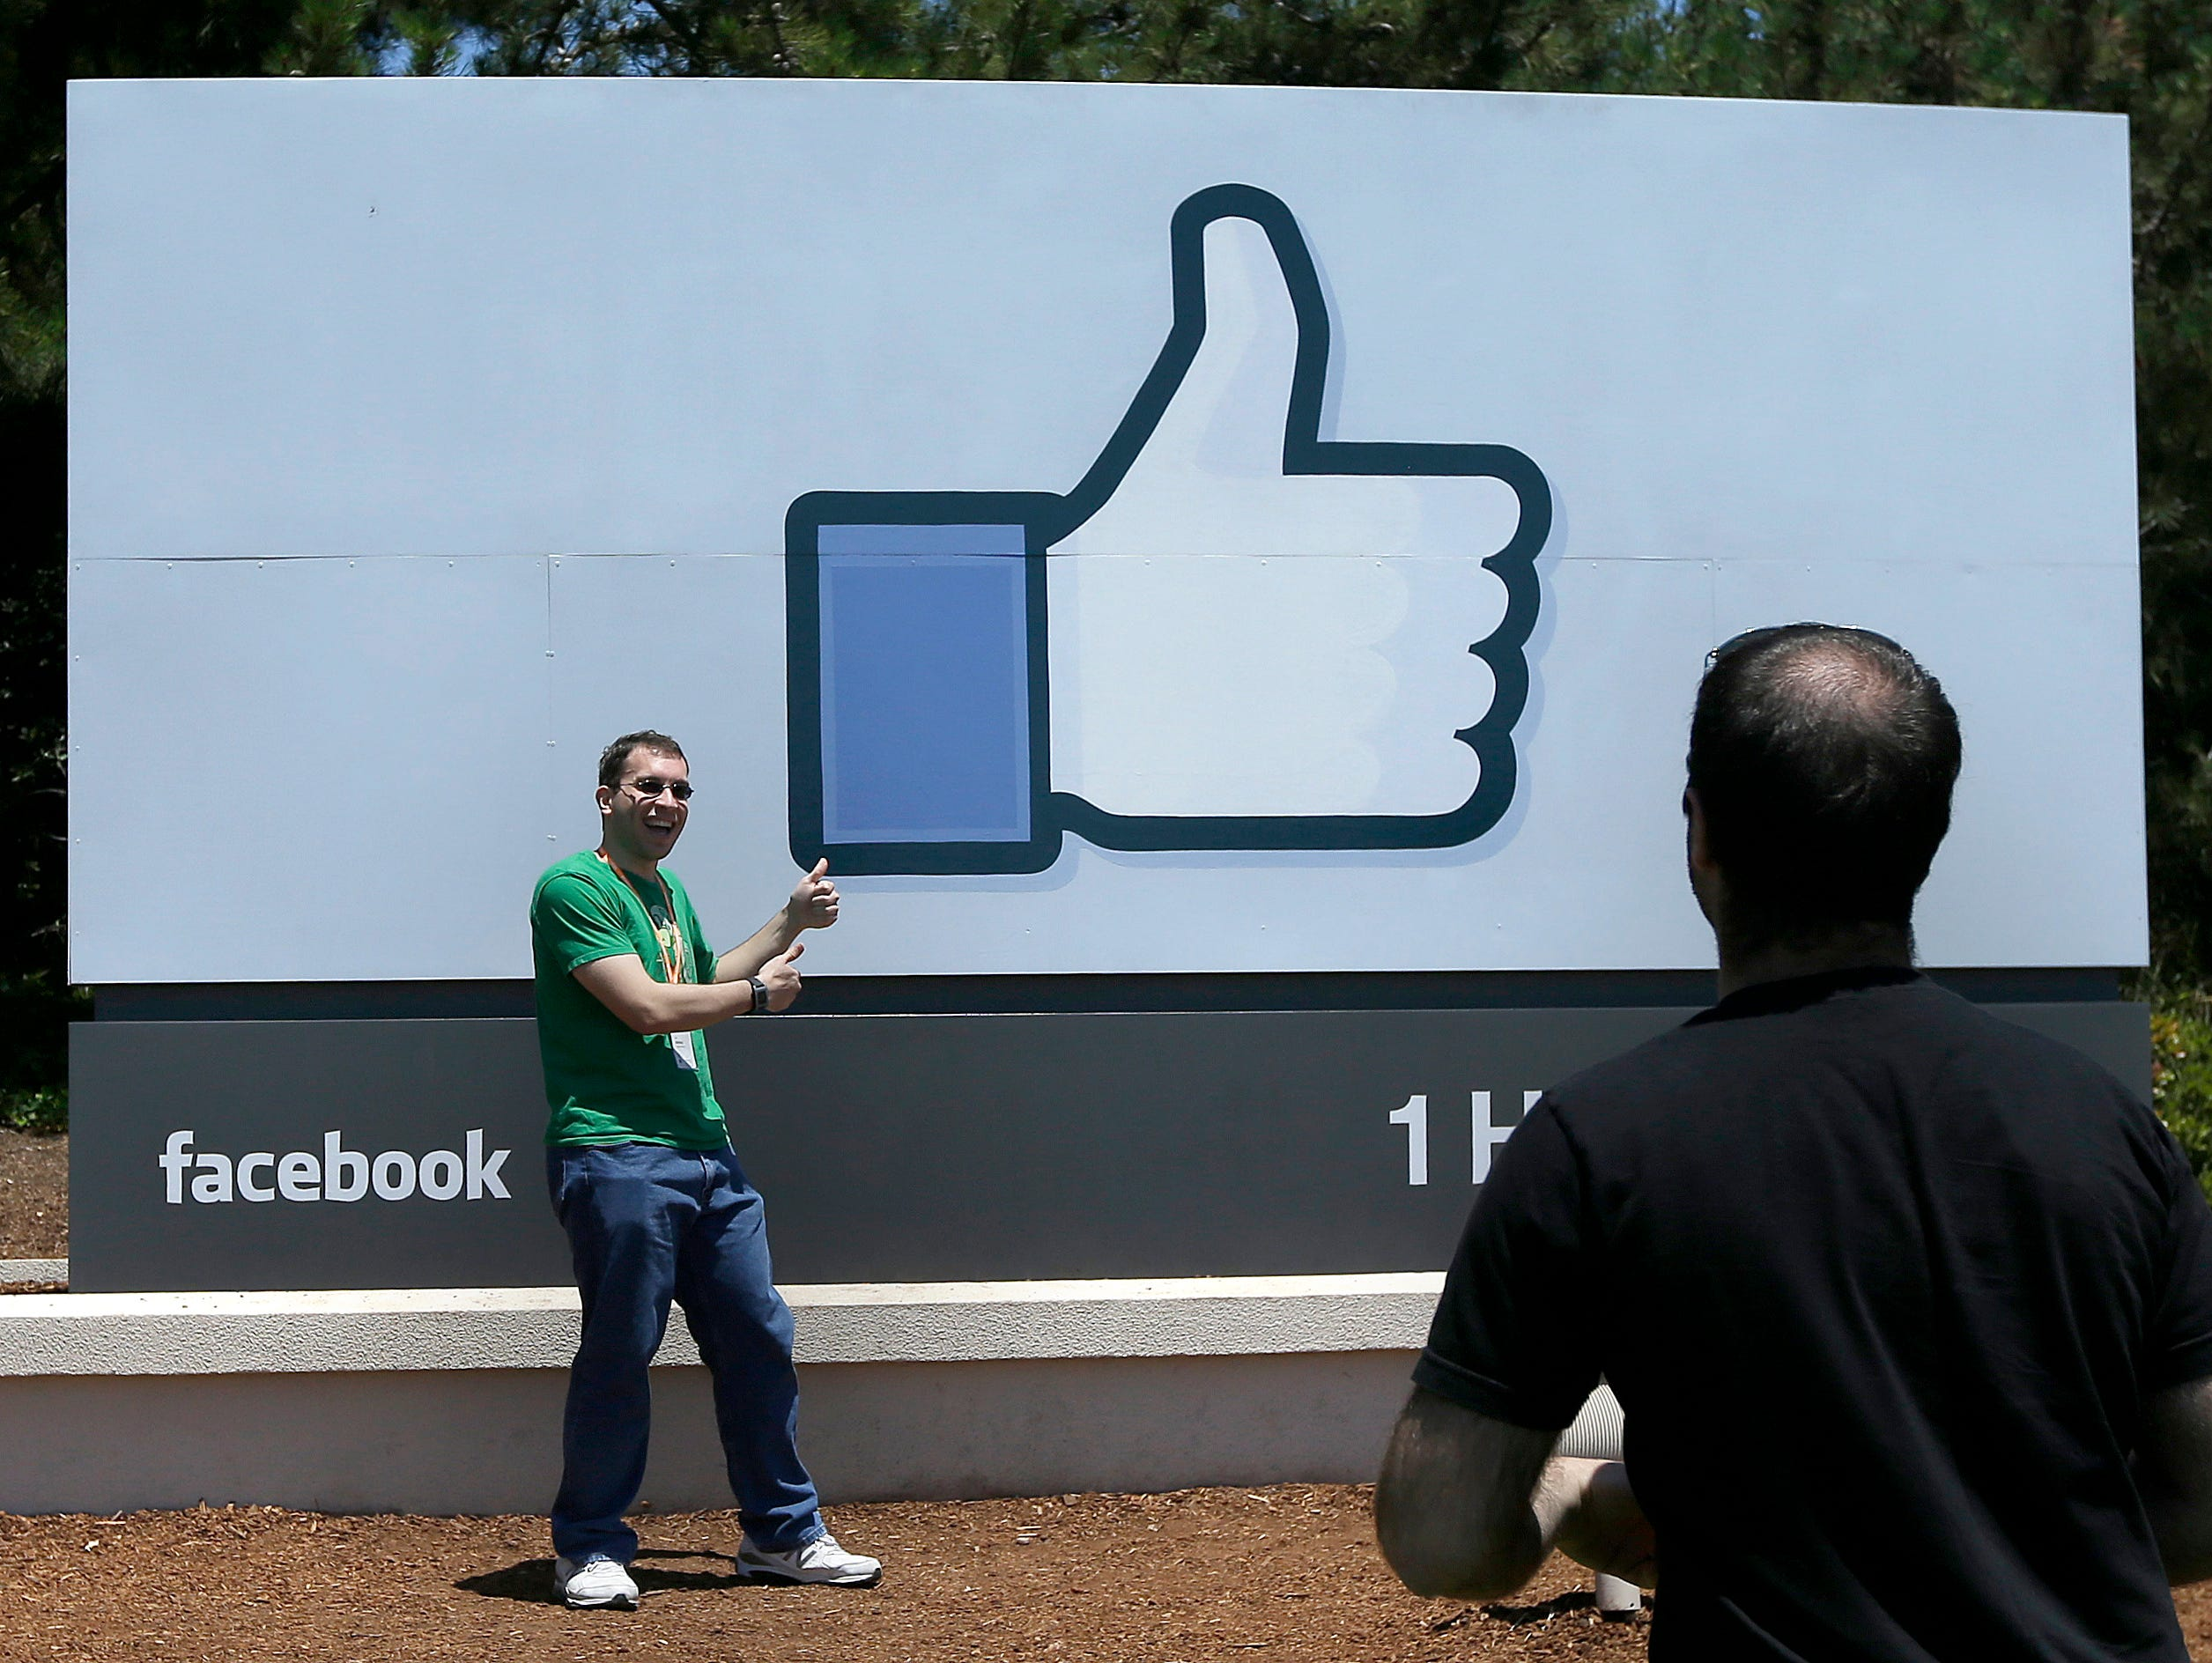 Investors wary over Facebook earnings, stock tumbles